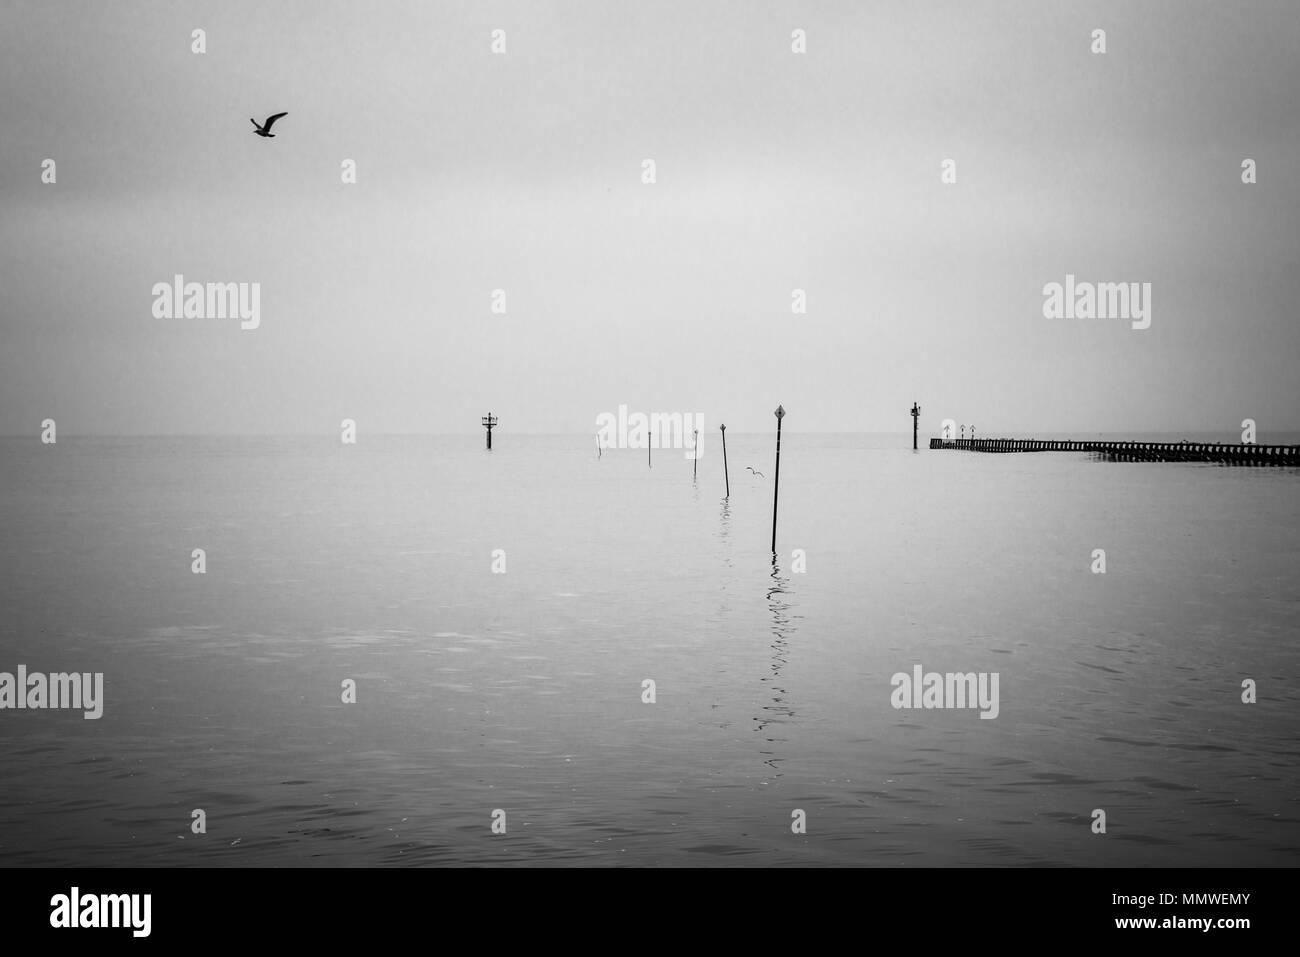 A misty overcast day on the beach at Littleampton in West Sussex, England. - Stock Image